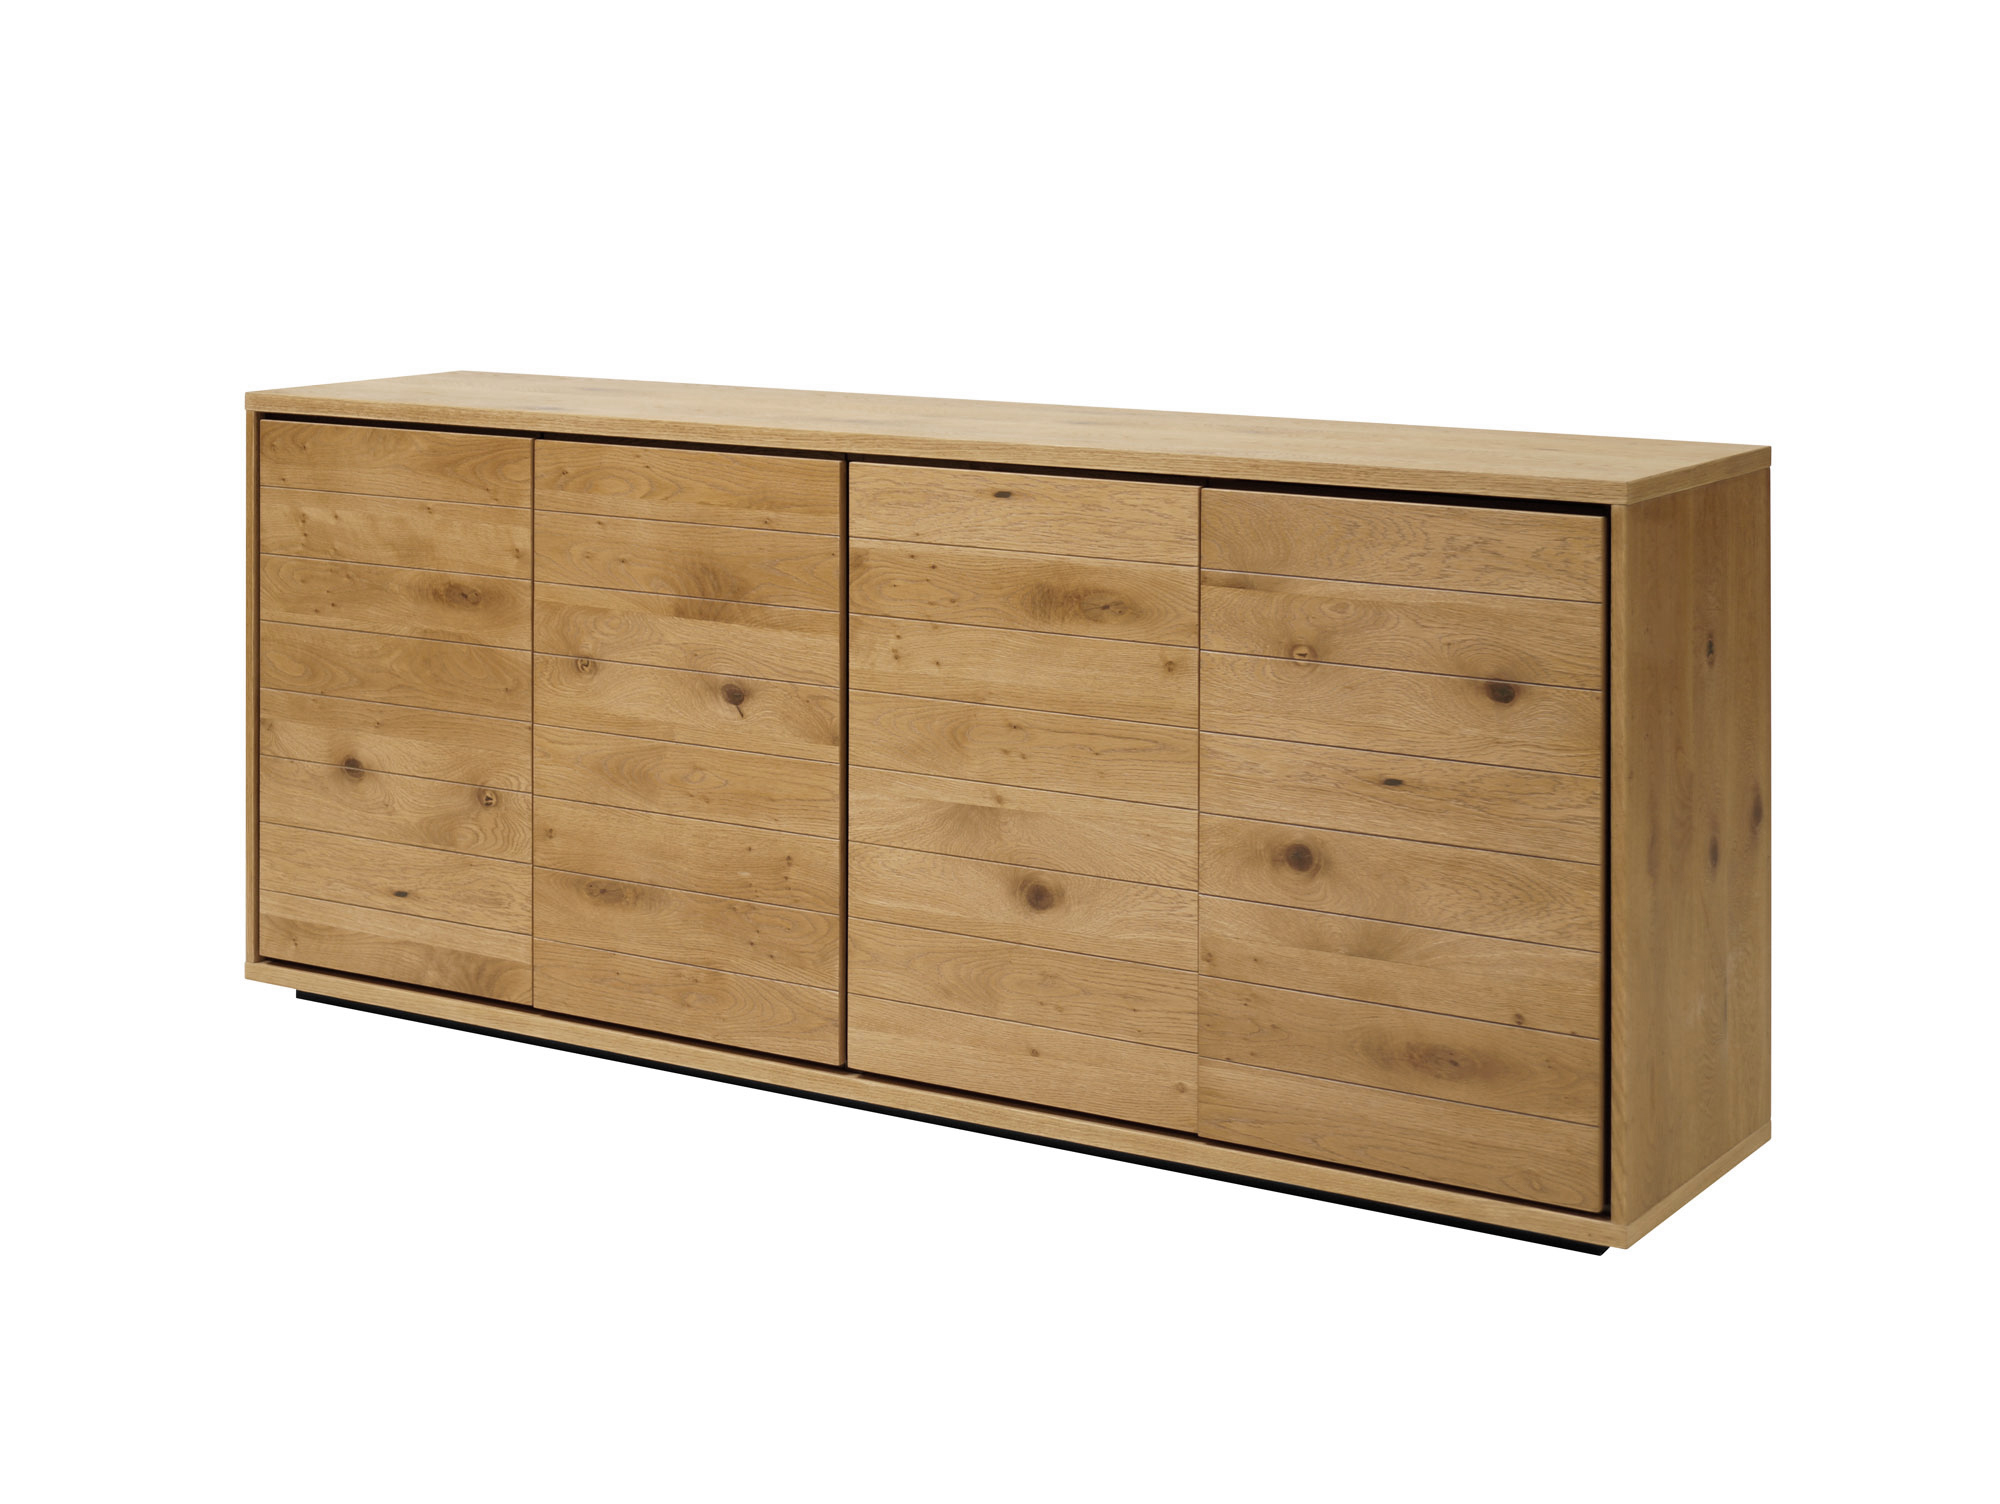 Darling sideboard wildeiche furniert for Sideboard wildeiche